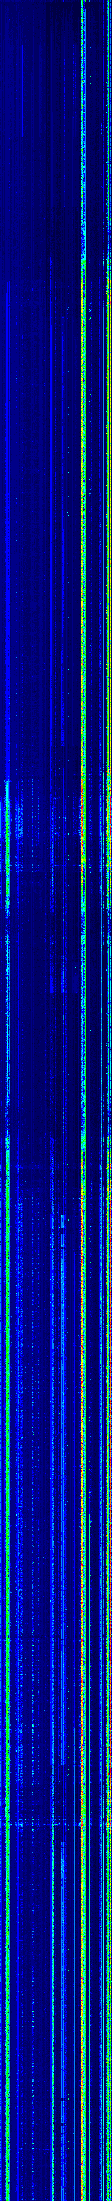 0300-0900 Mhz Around town of Republic - H_C_L_H_6_A